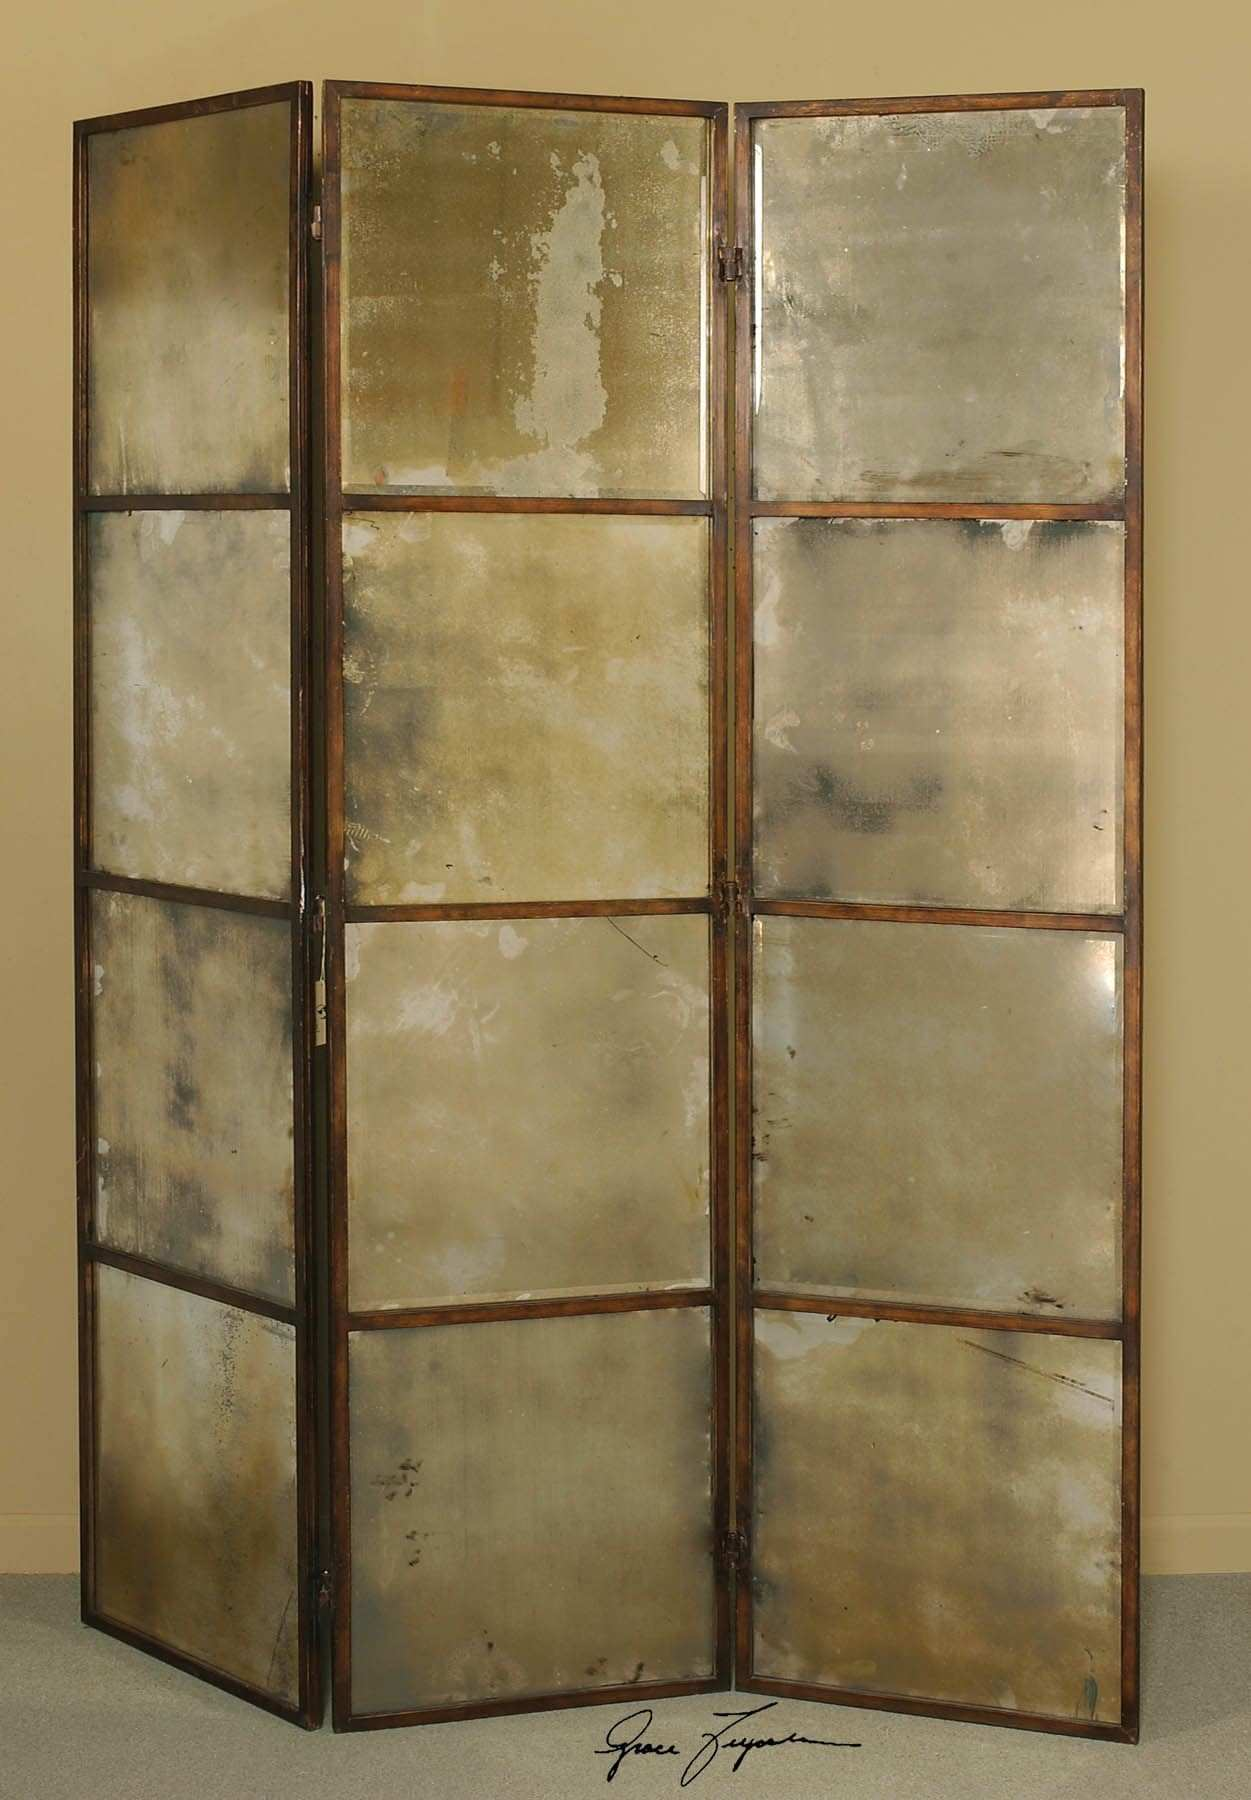 Uttermost Avidan 3 Panel Screen Mirror 62w 80h 3d